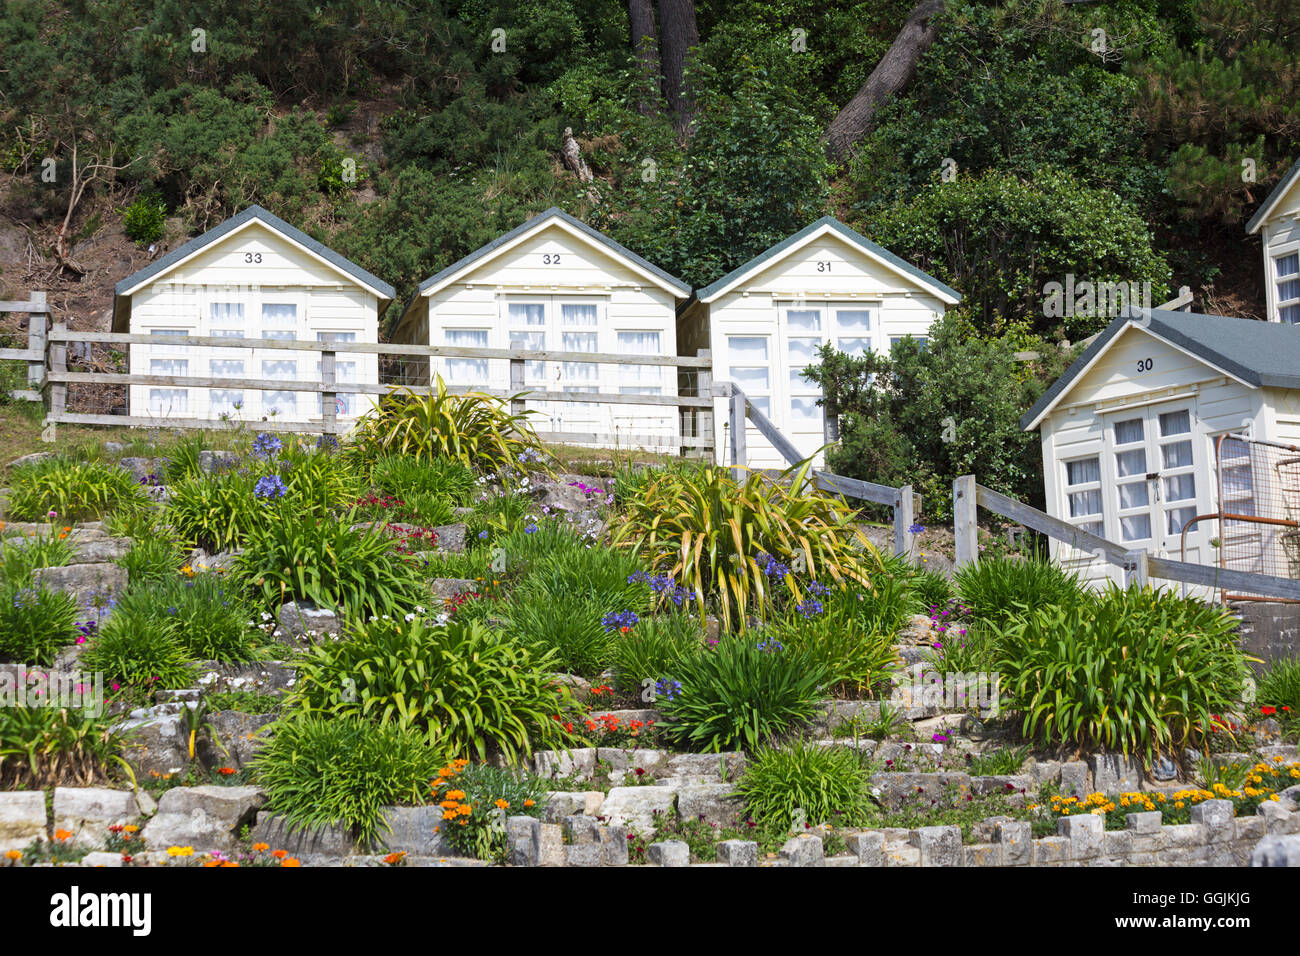 Beach huts at Canford Cliffs, Poole, Dorset in July Stock Photo ...